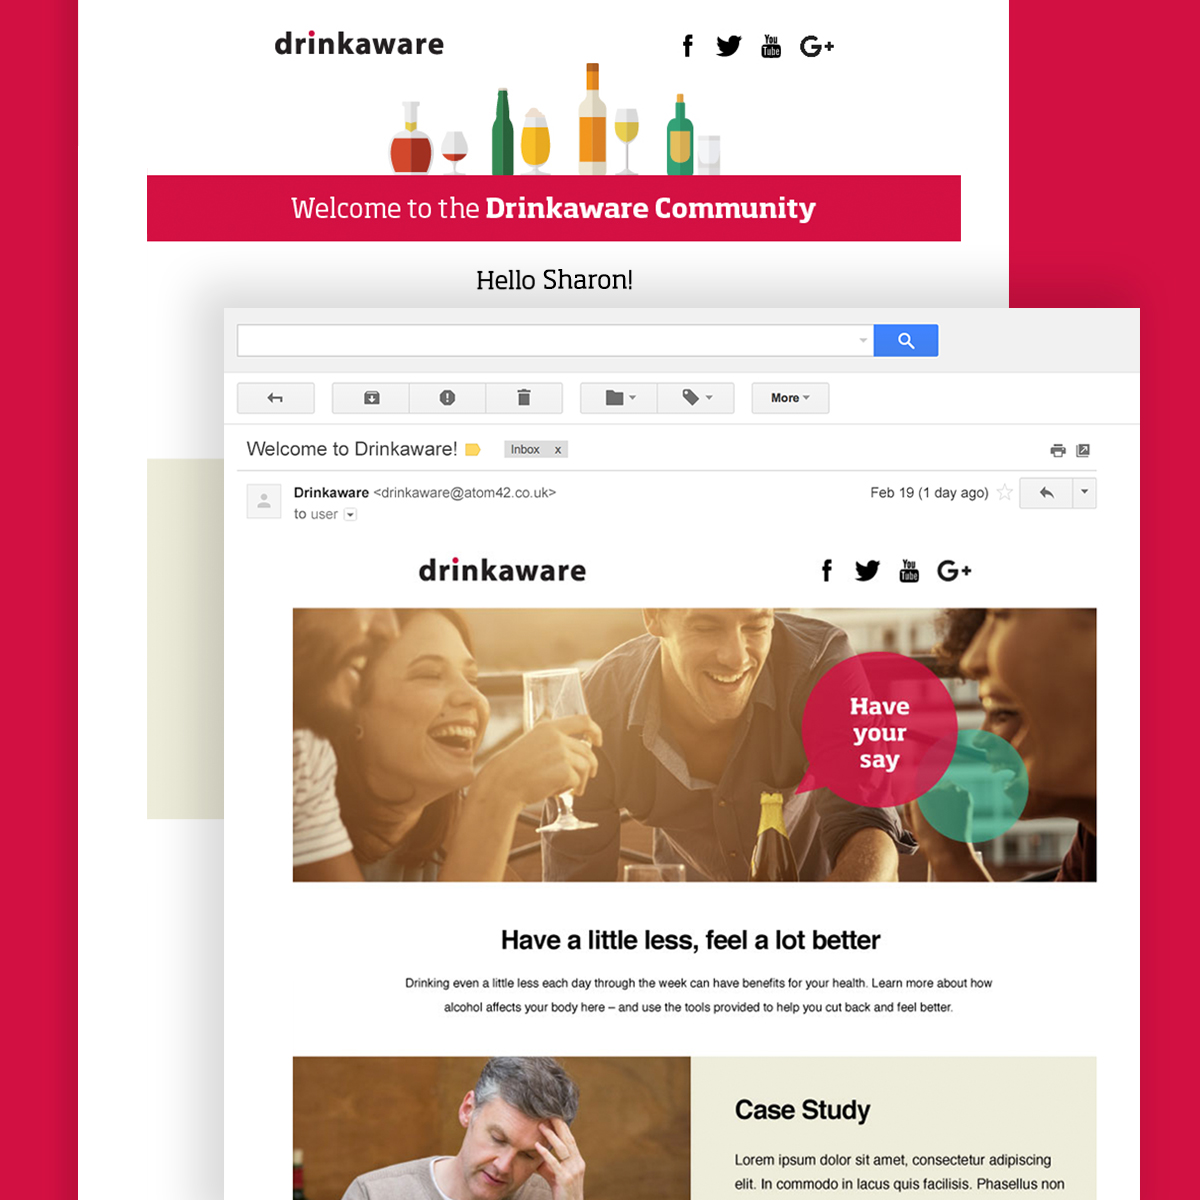 Newsletter: Drinkaware